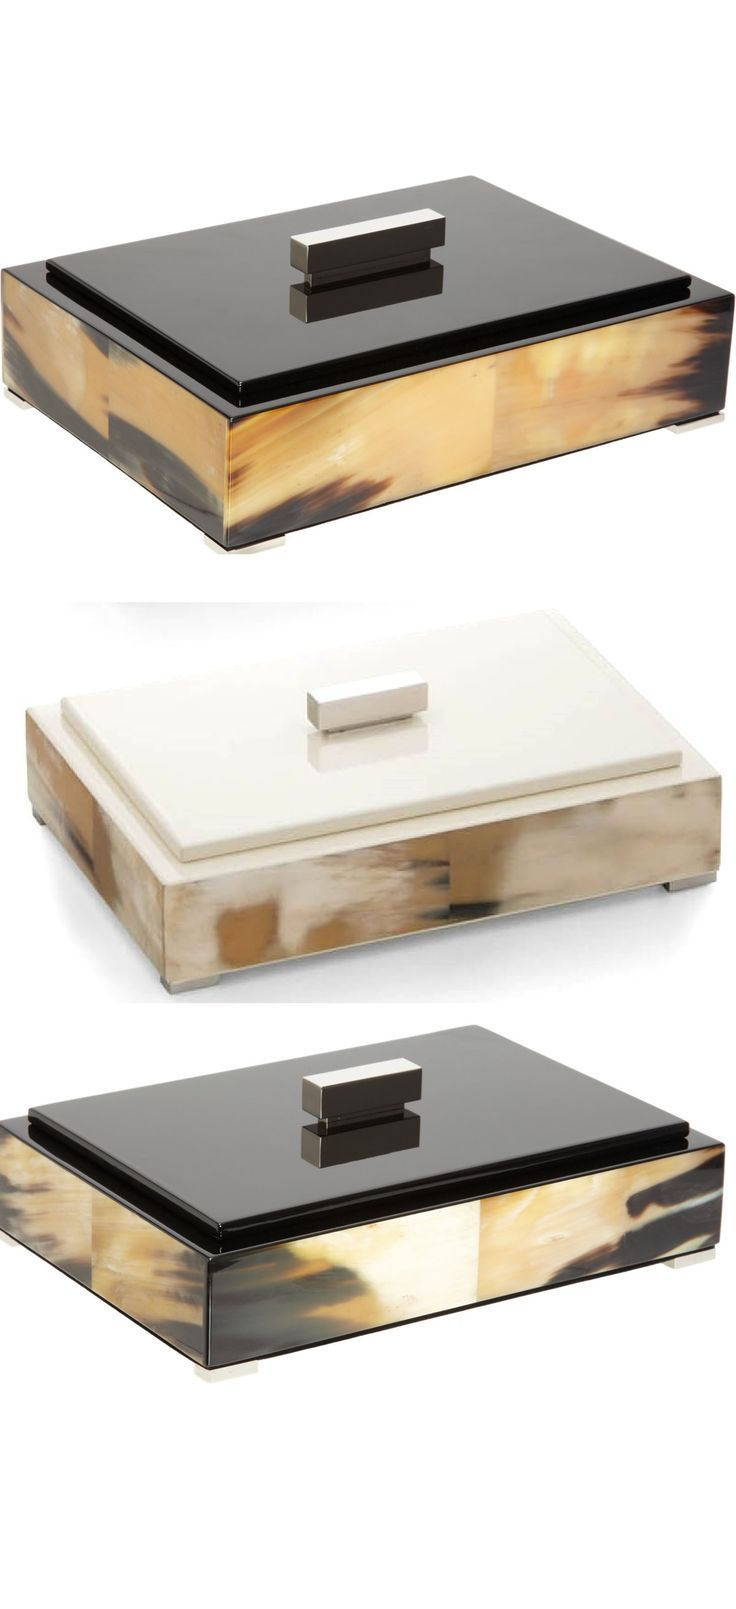 Decorative Boxes  :     luxury gift, luxury gifts, luxury gift ideas,luxury gift for him, luxury gift for men, luxury gift for man, luxury gift for her, luxury gift for woman, luxury gift for women, luxury birthday gift, luxury wedding gift, luxury anniversary gift, luxury corporate gift,... - #DecorativeBoxes